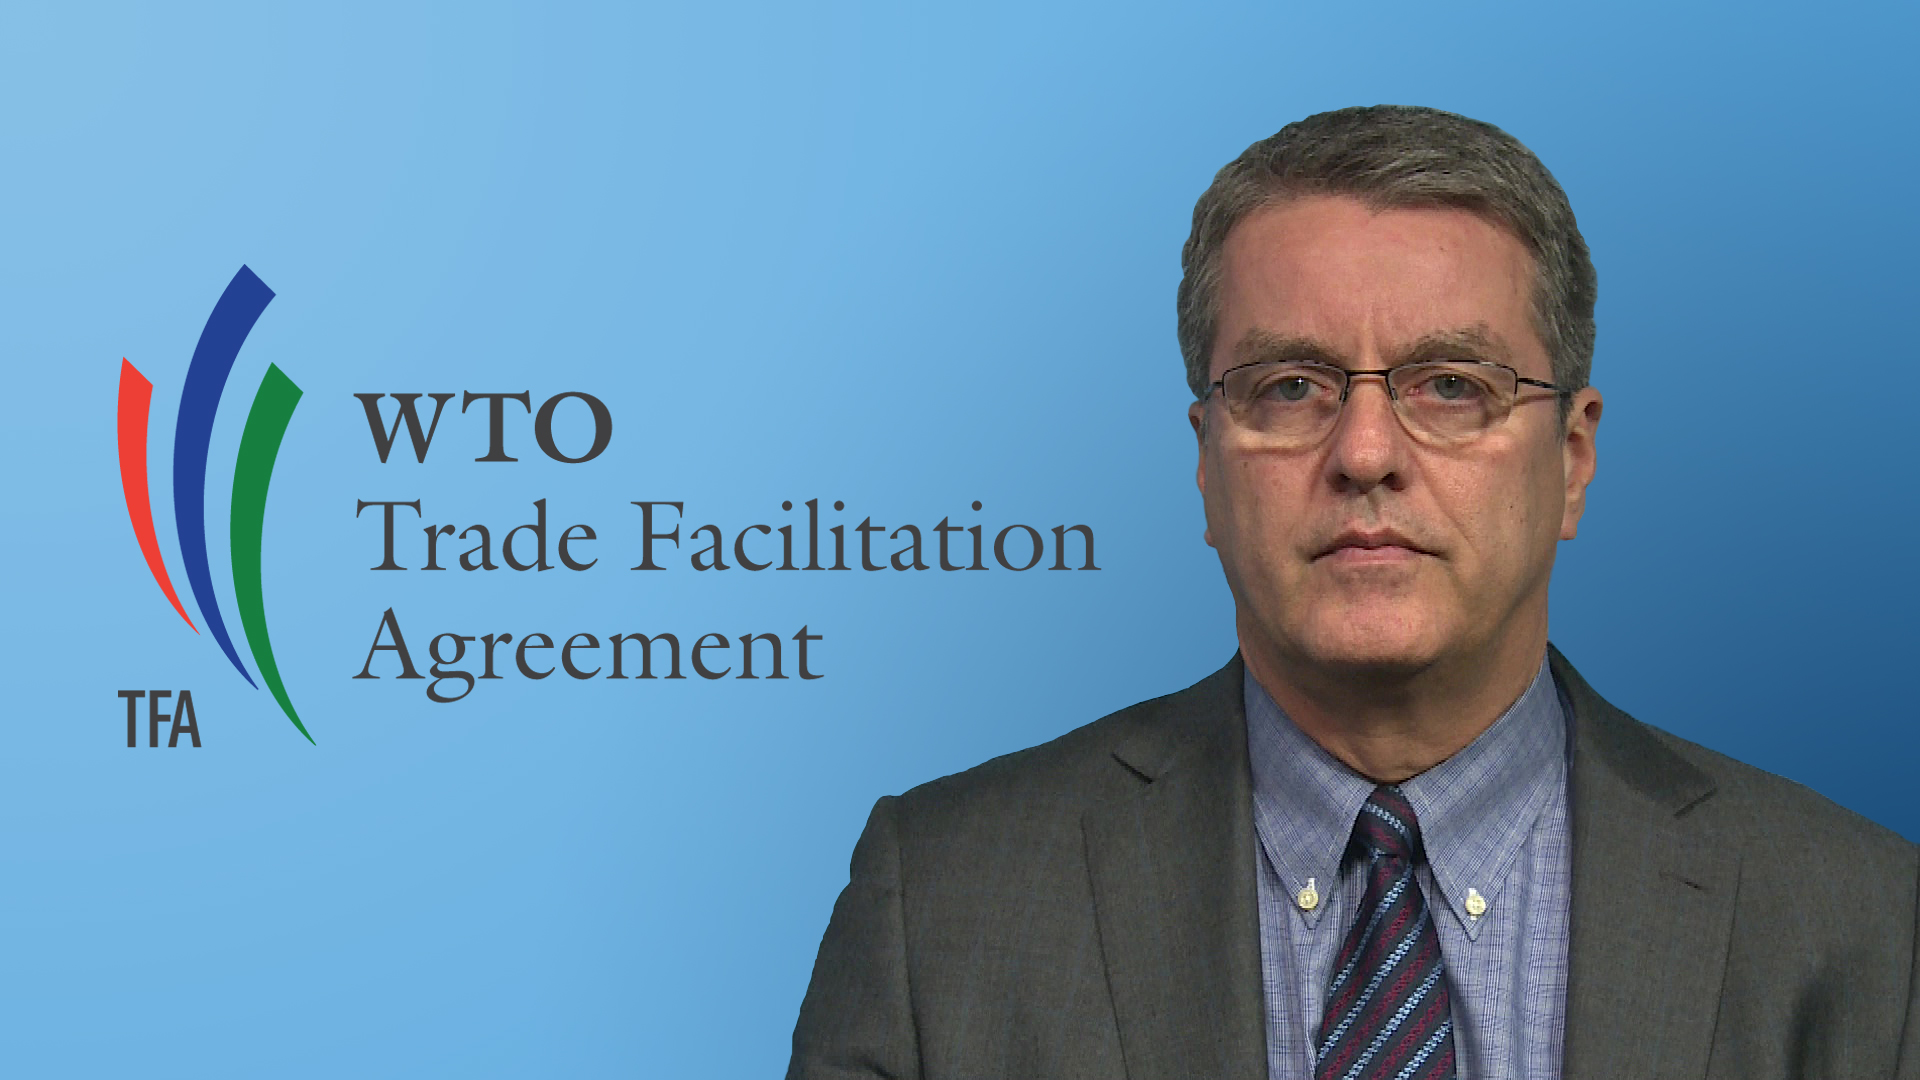 Wto 2017 News Items Trade Facilitation Agreement Enters Into Force